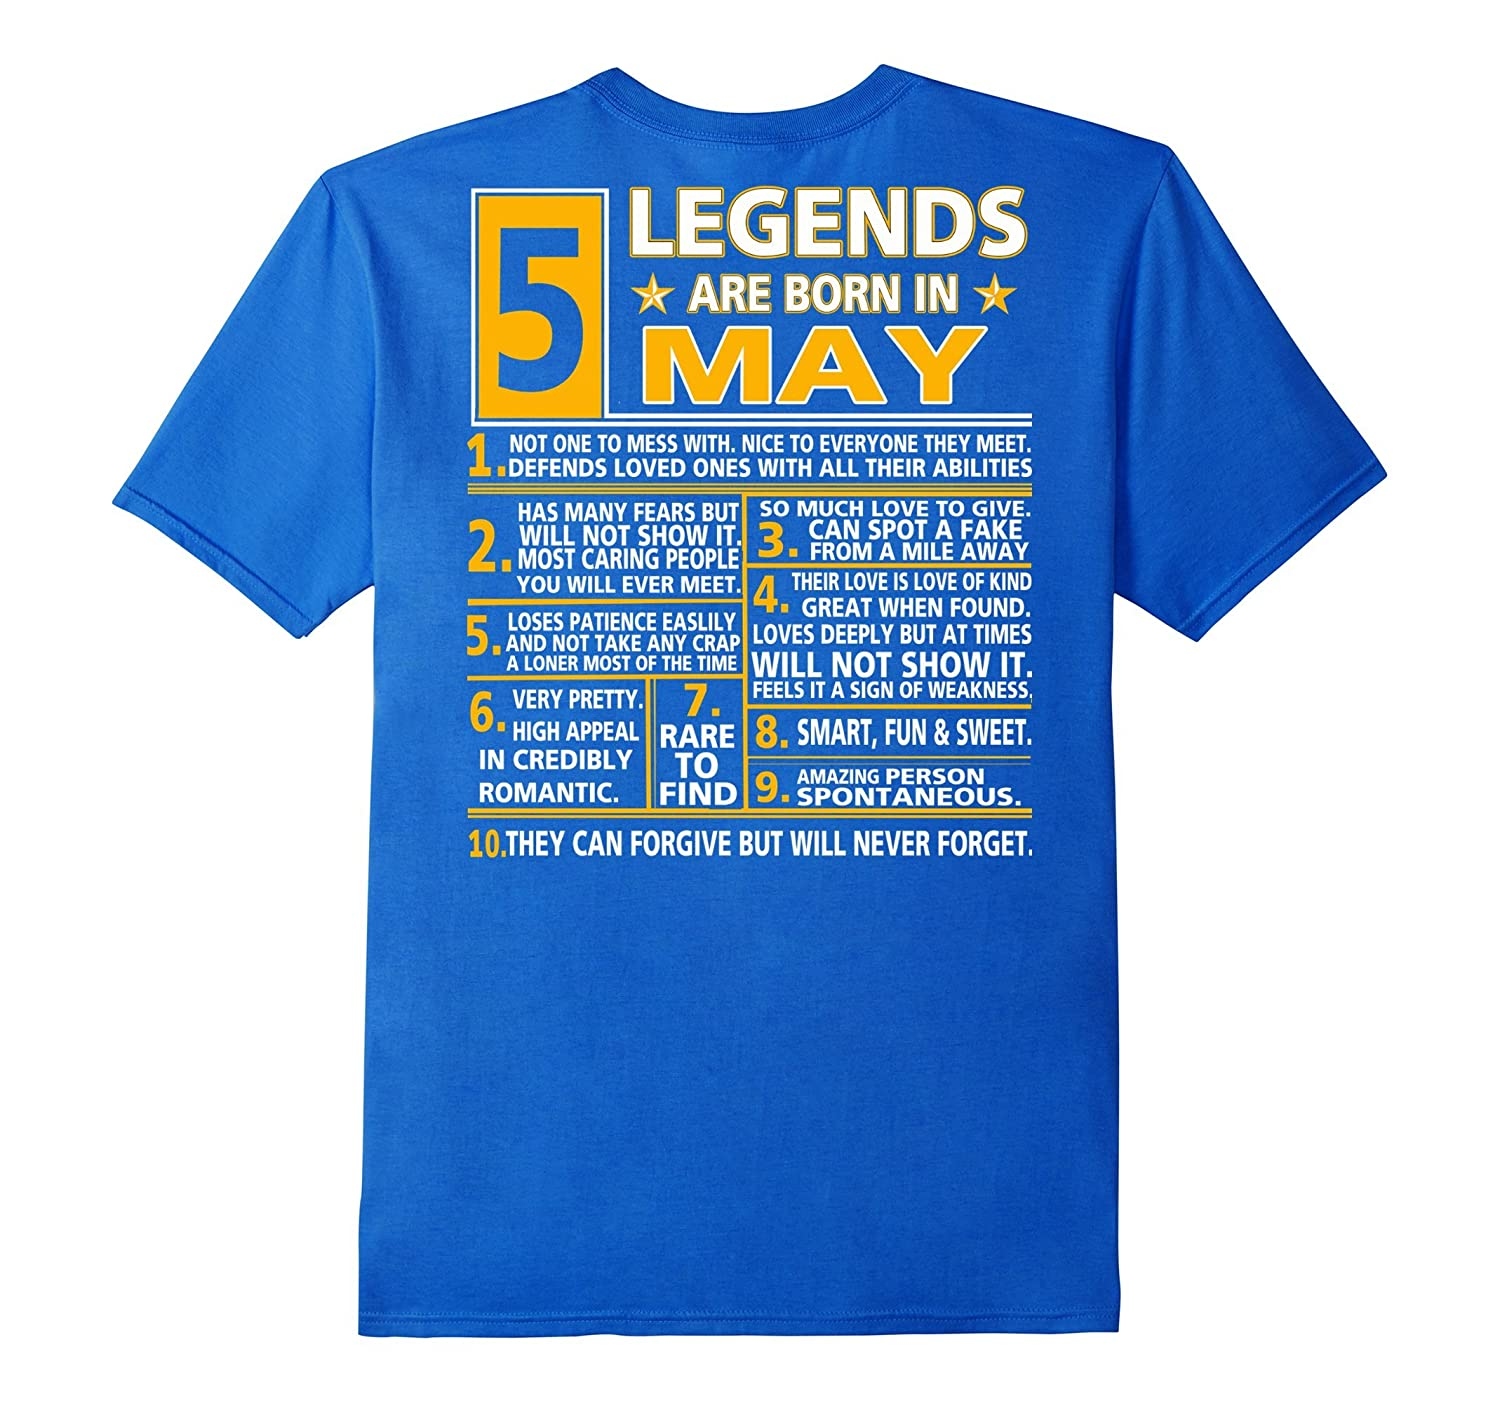 Legends Are Born In May T-Shirt / Taurus shirt-CL